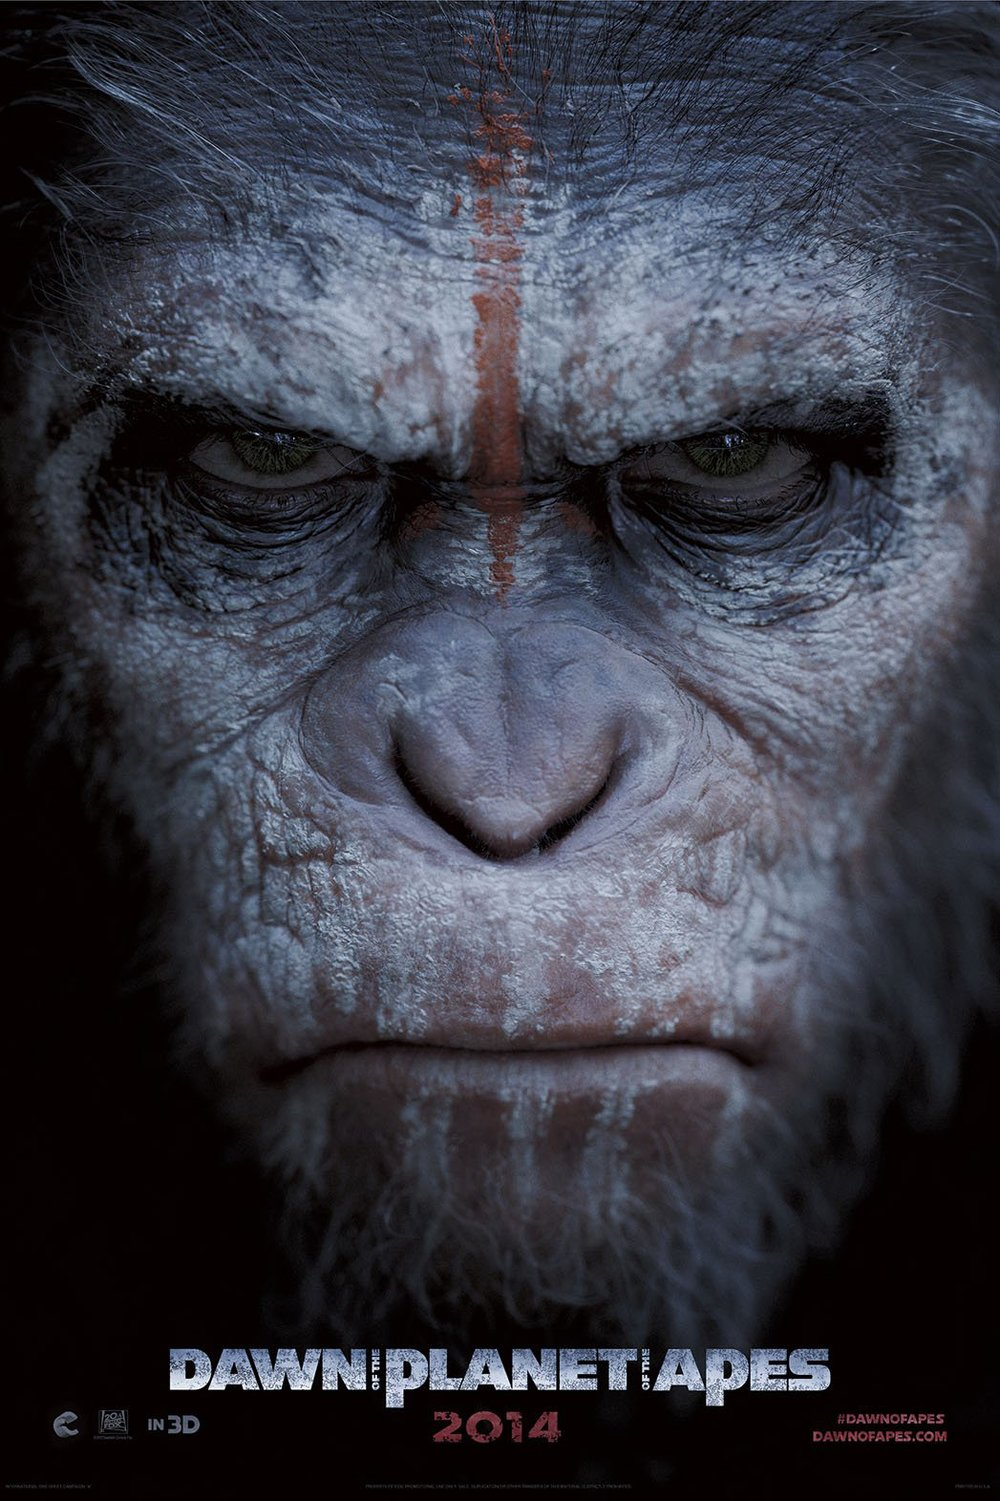 dawn_of_the_planet_of_the_apes_poster_a_p.jpg